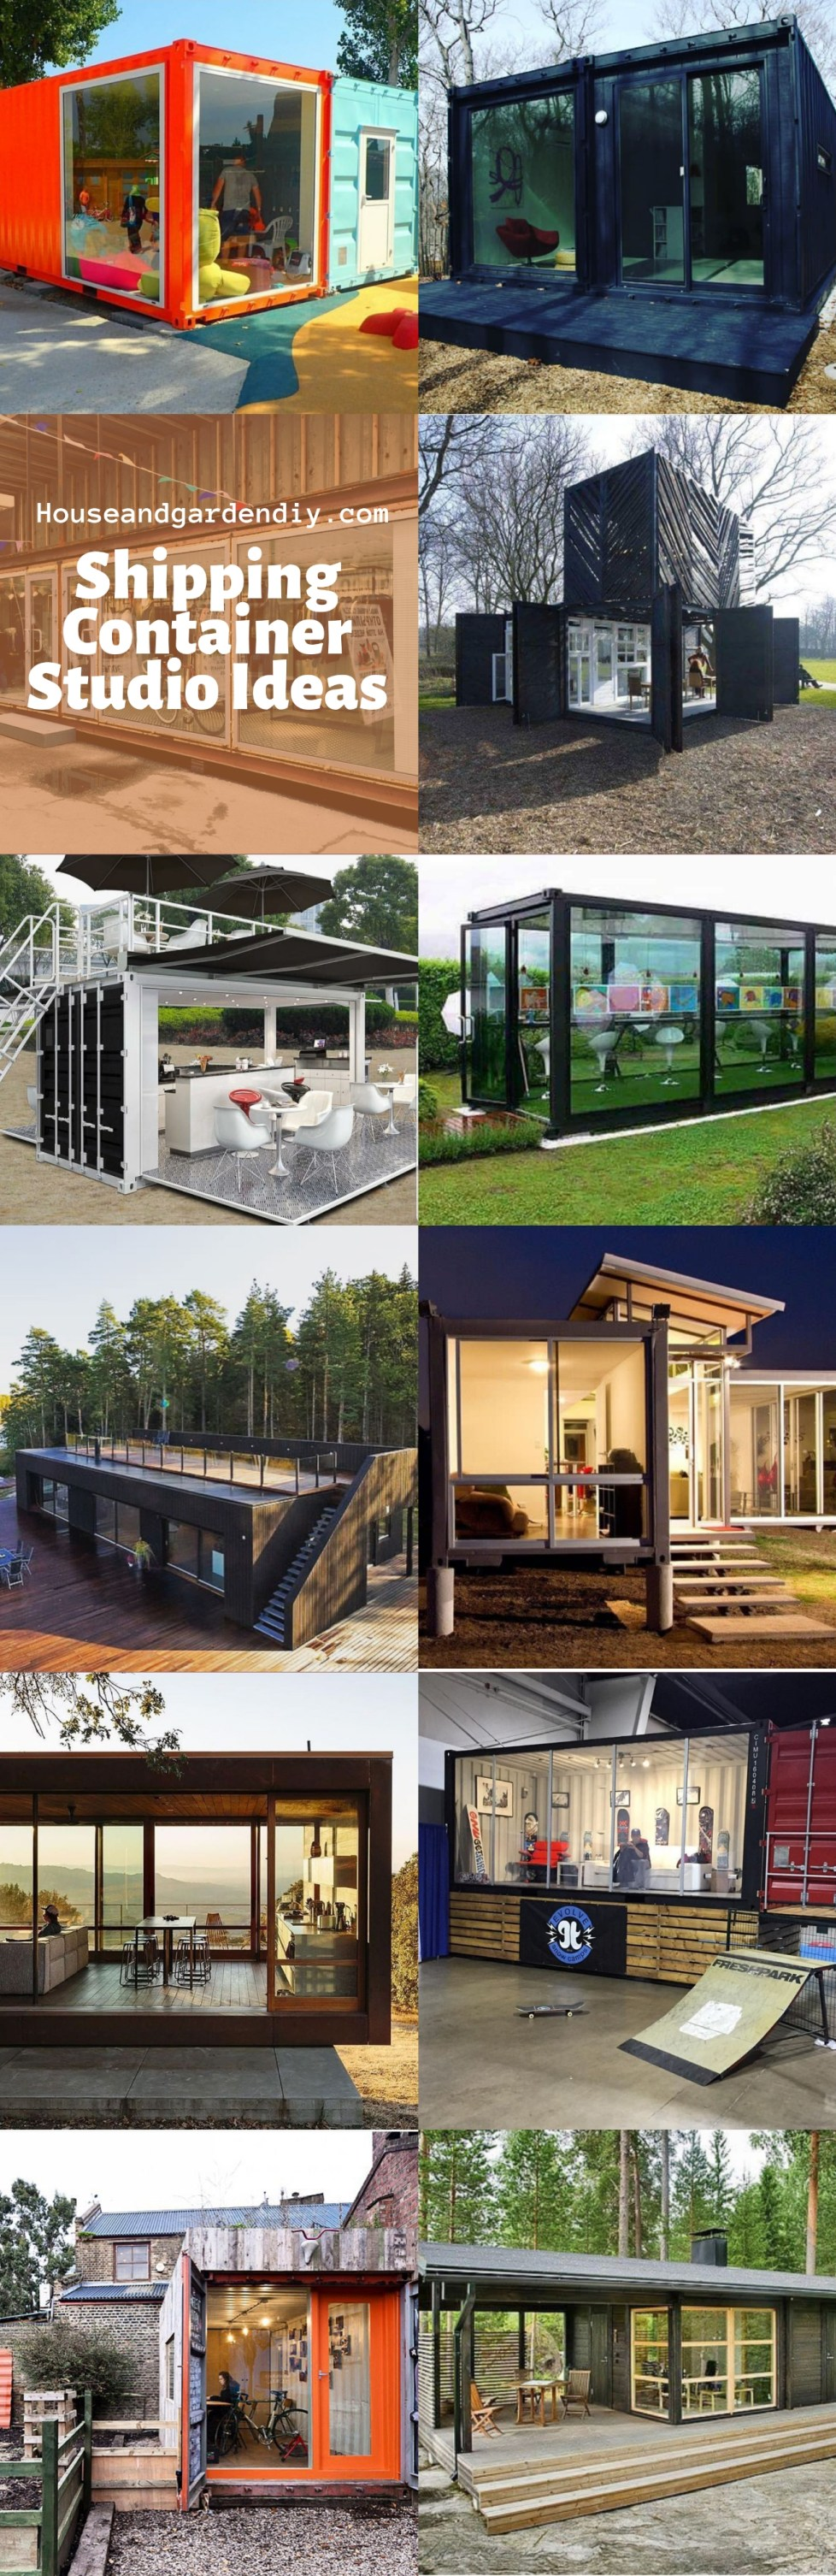 Shipping Container Studio Ideas